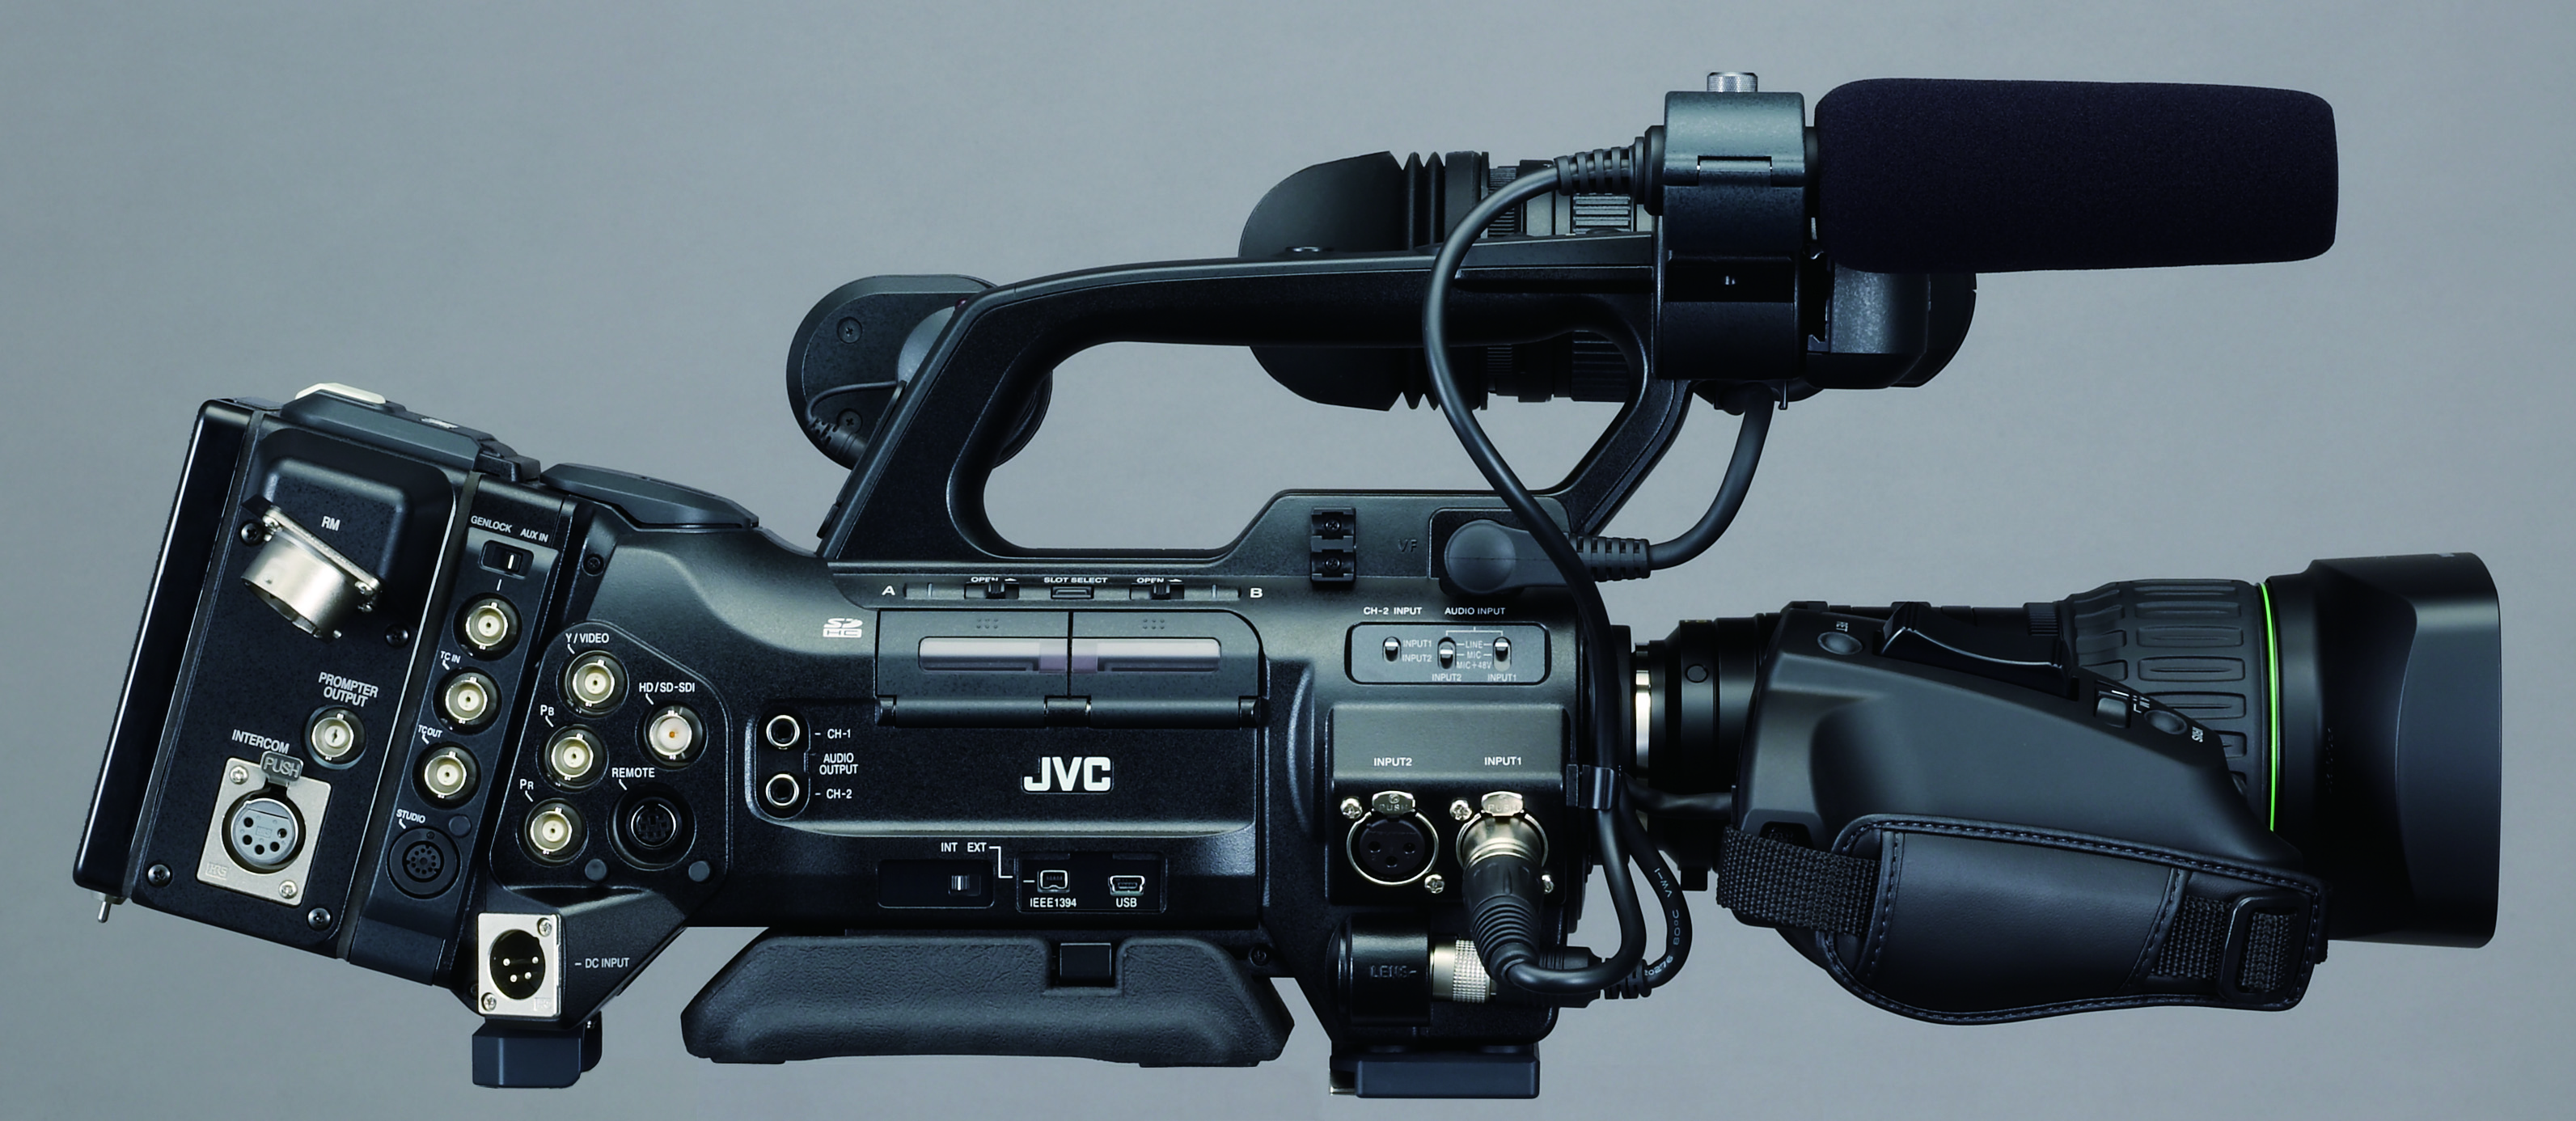 Jvc Announces Gy Hm790 8 4 Studio Viewfinder Studio Adapter likewise Canon Eos M6 Mirrorless Digital Camera Body Only Black further Local Anesthesiassd fs furthermore Business Model further Peristaltic Embedded Dosing Pump. on constant rate of sd